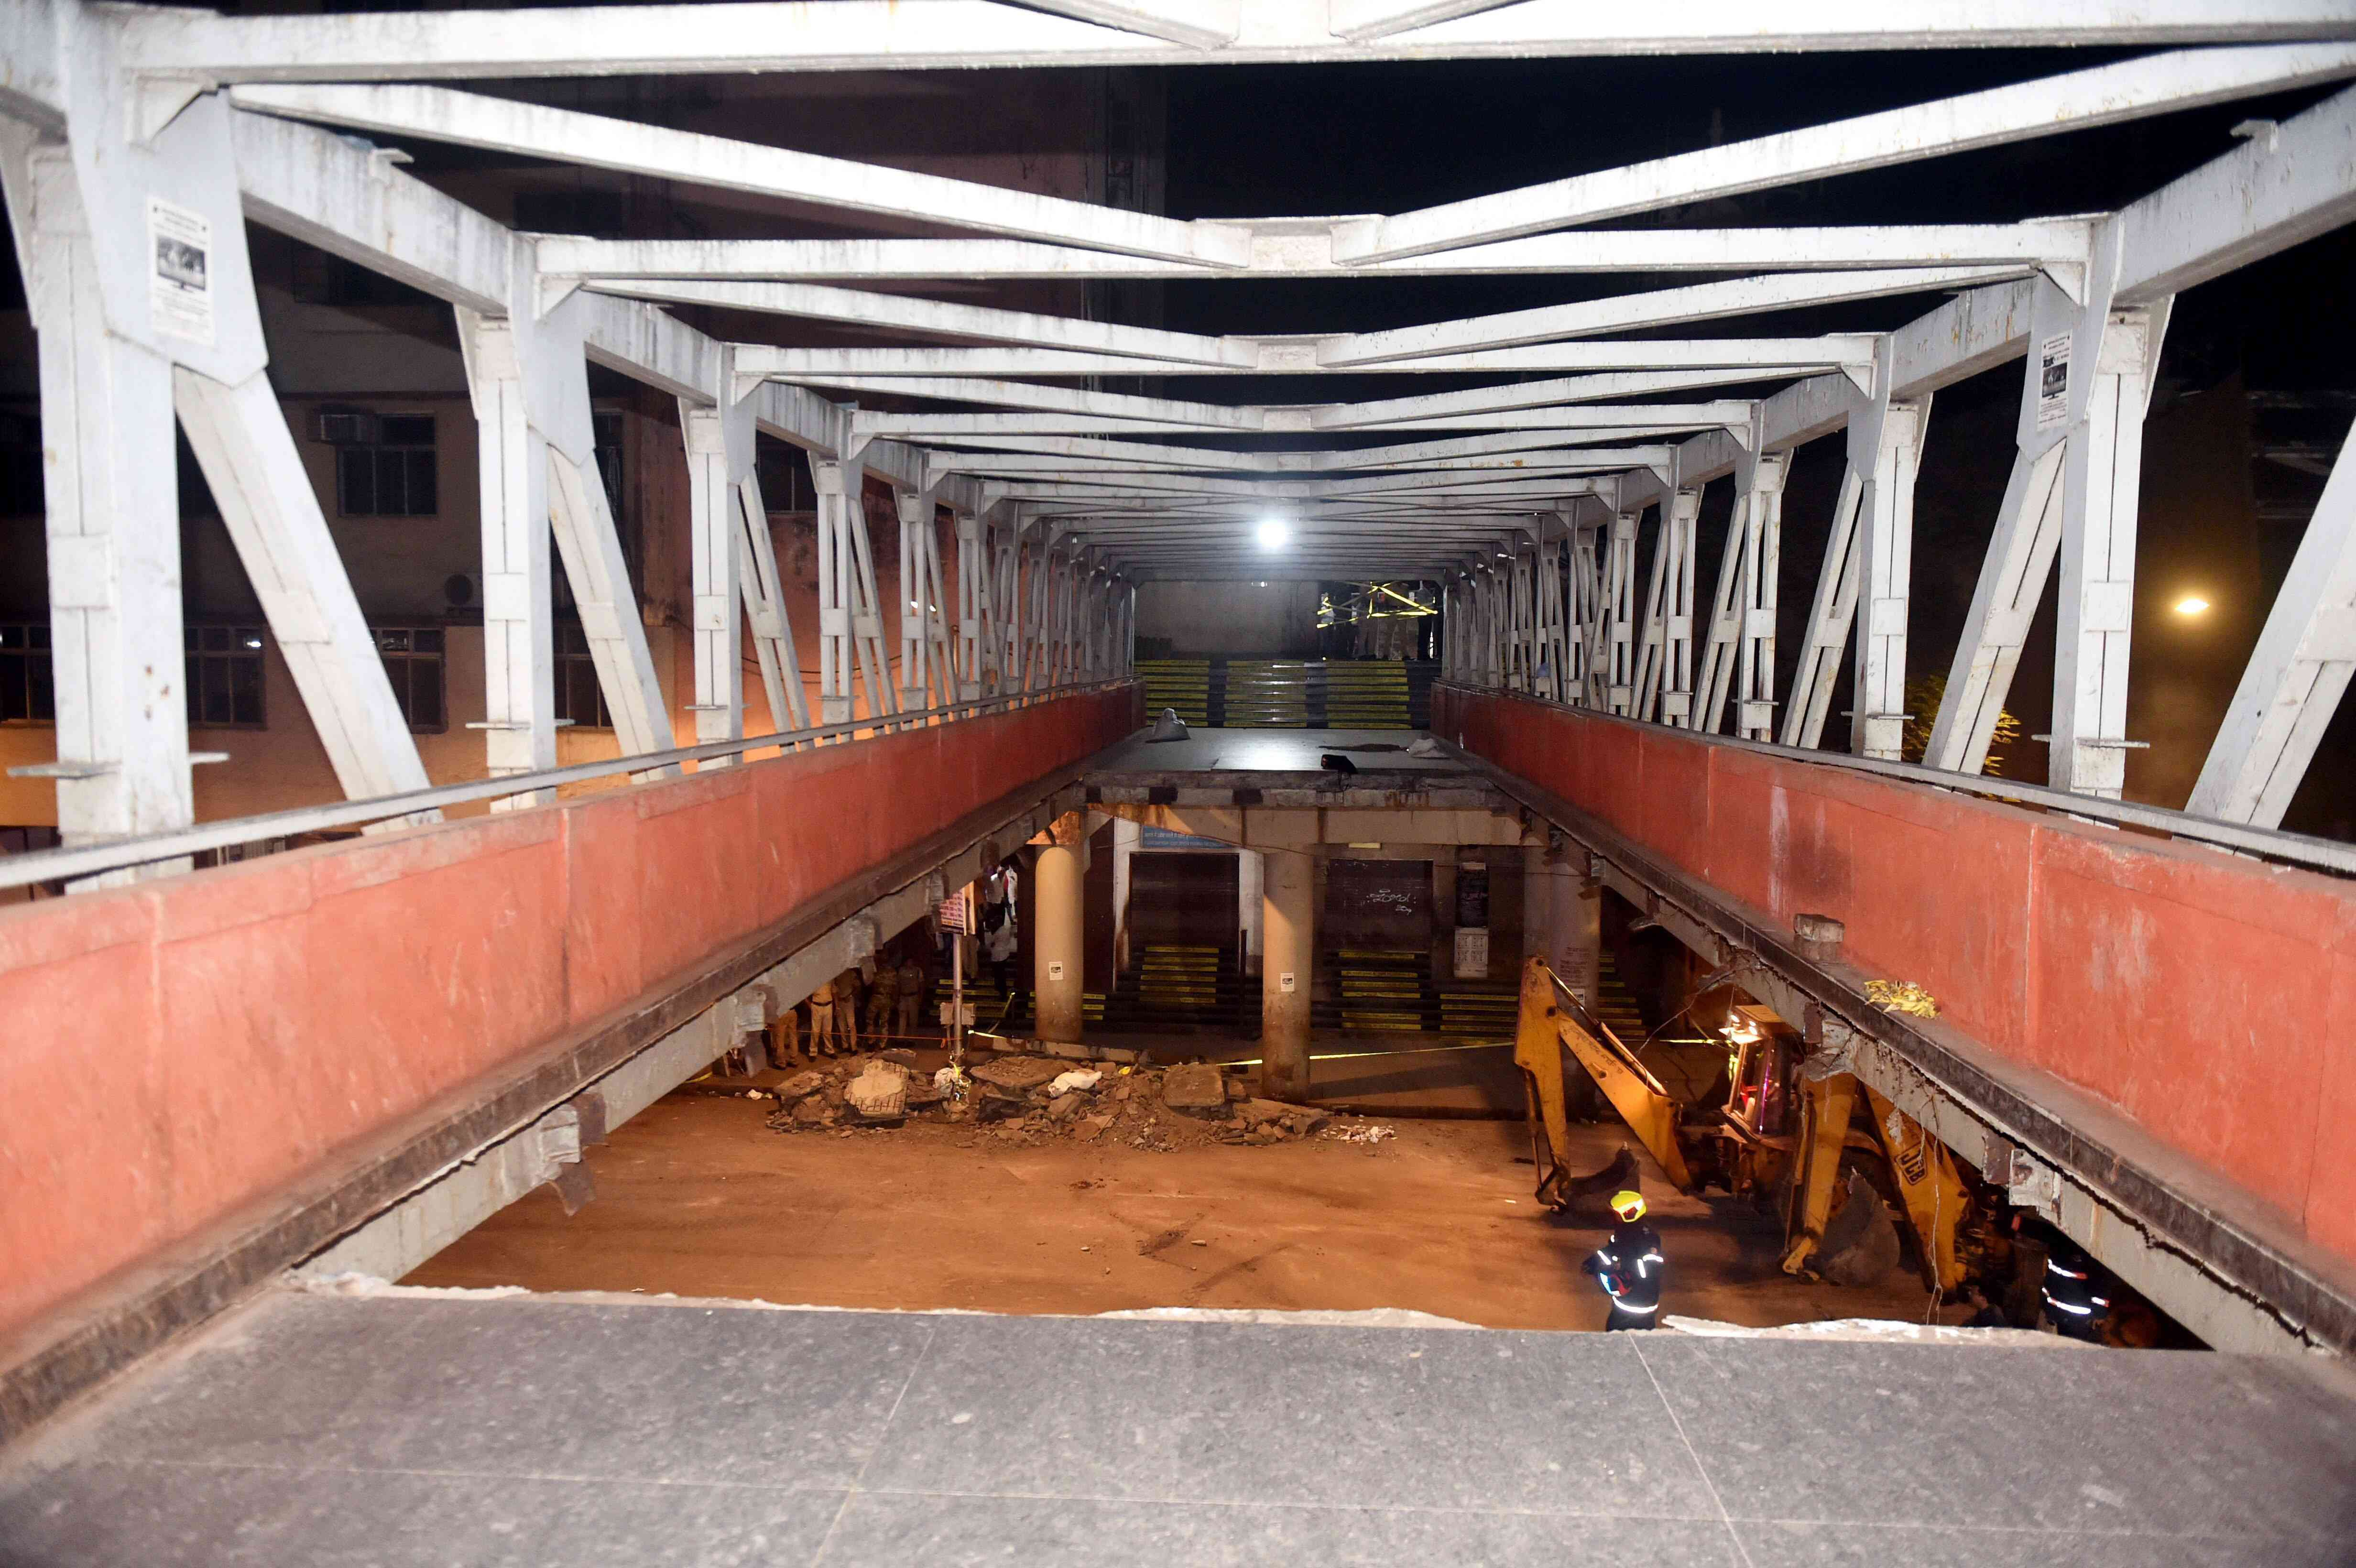 The damaged section of the foot overbridge that caved in on Thursday. (PTI Photo)